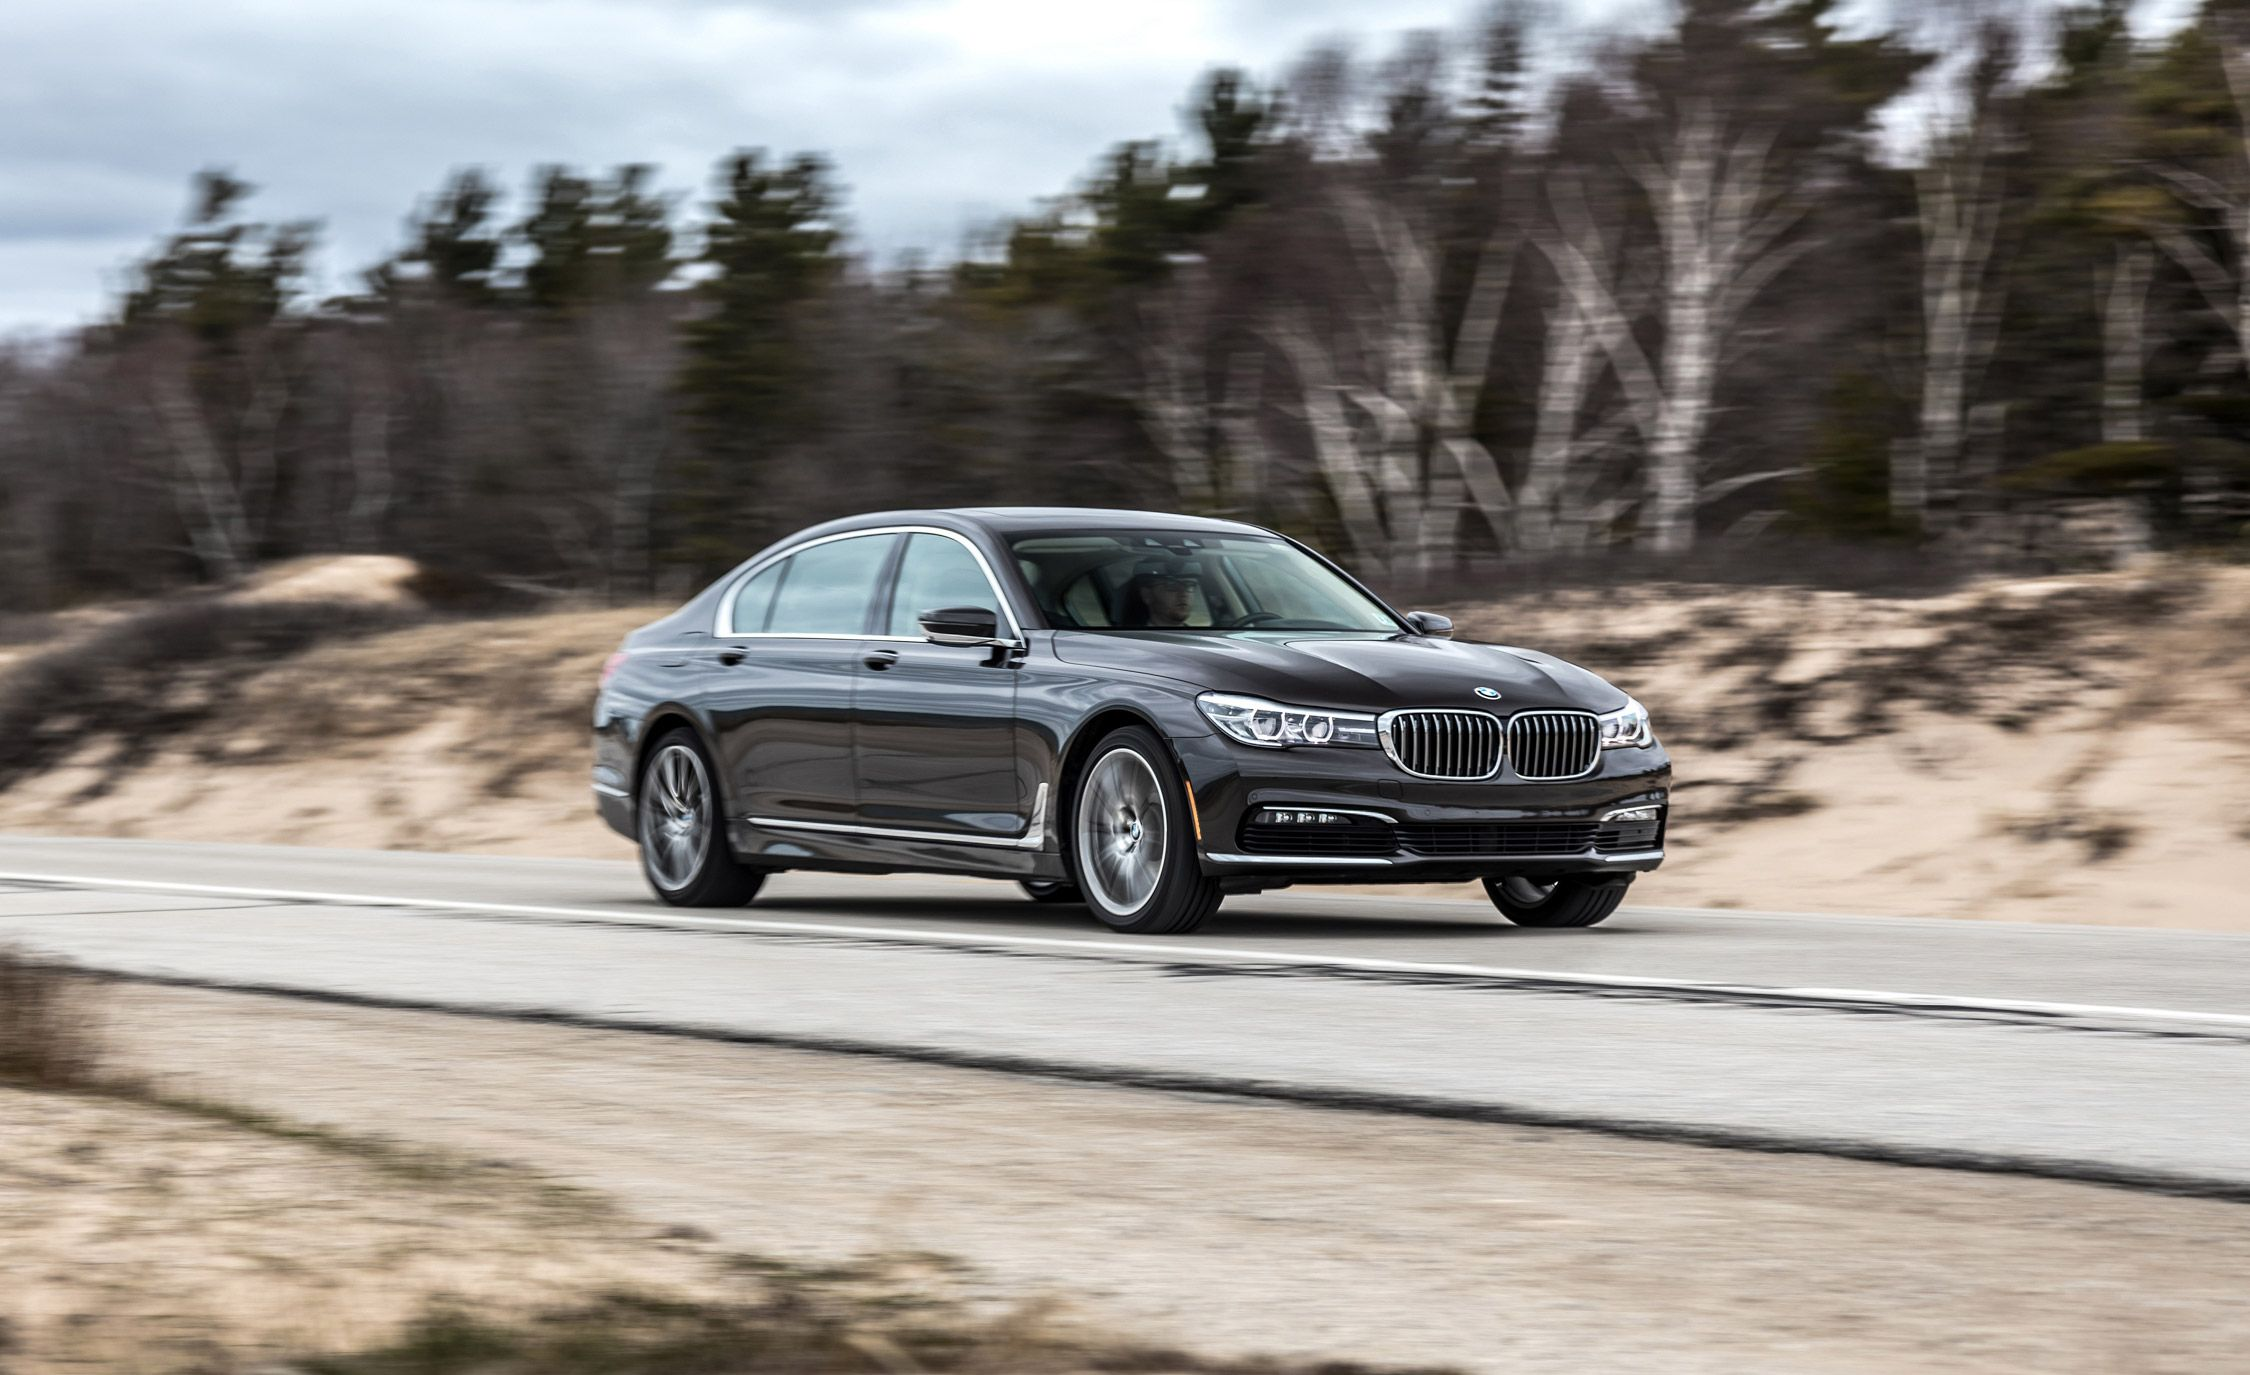 medium resolution of 2016 bmw 740i long term test review car and driver in addition 2000 bmw 740il double din radio on bmw 750li fuse diagram